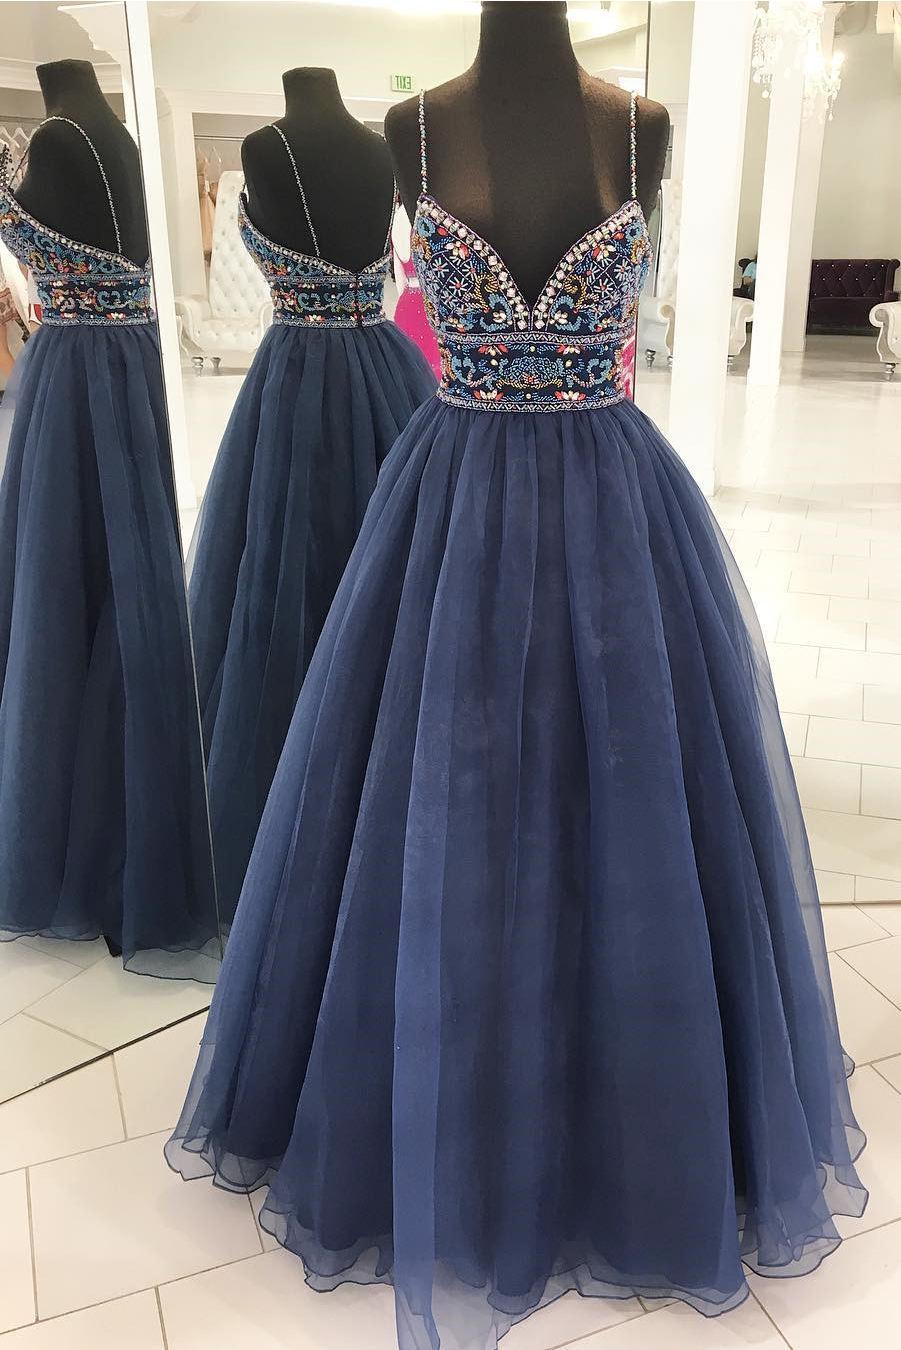 Prom Dress with Colored Beading, Graduation Party Dresses, Prom ...